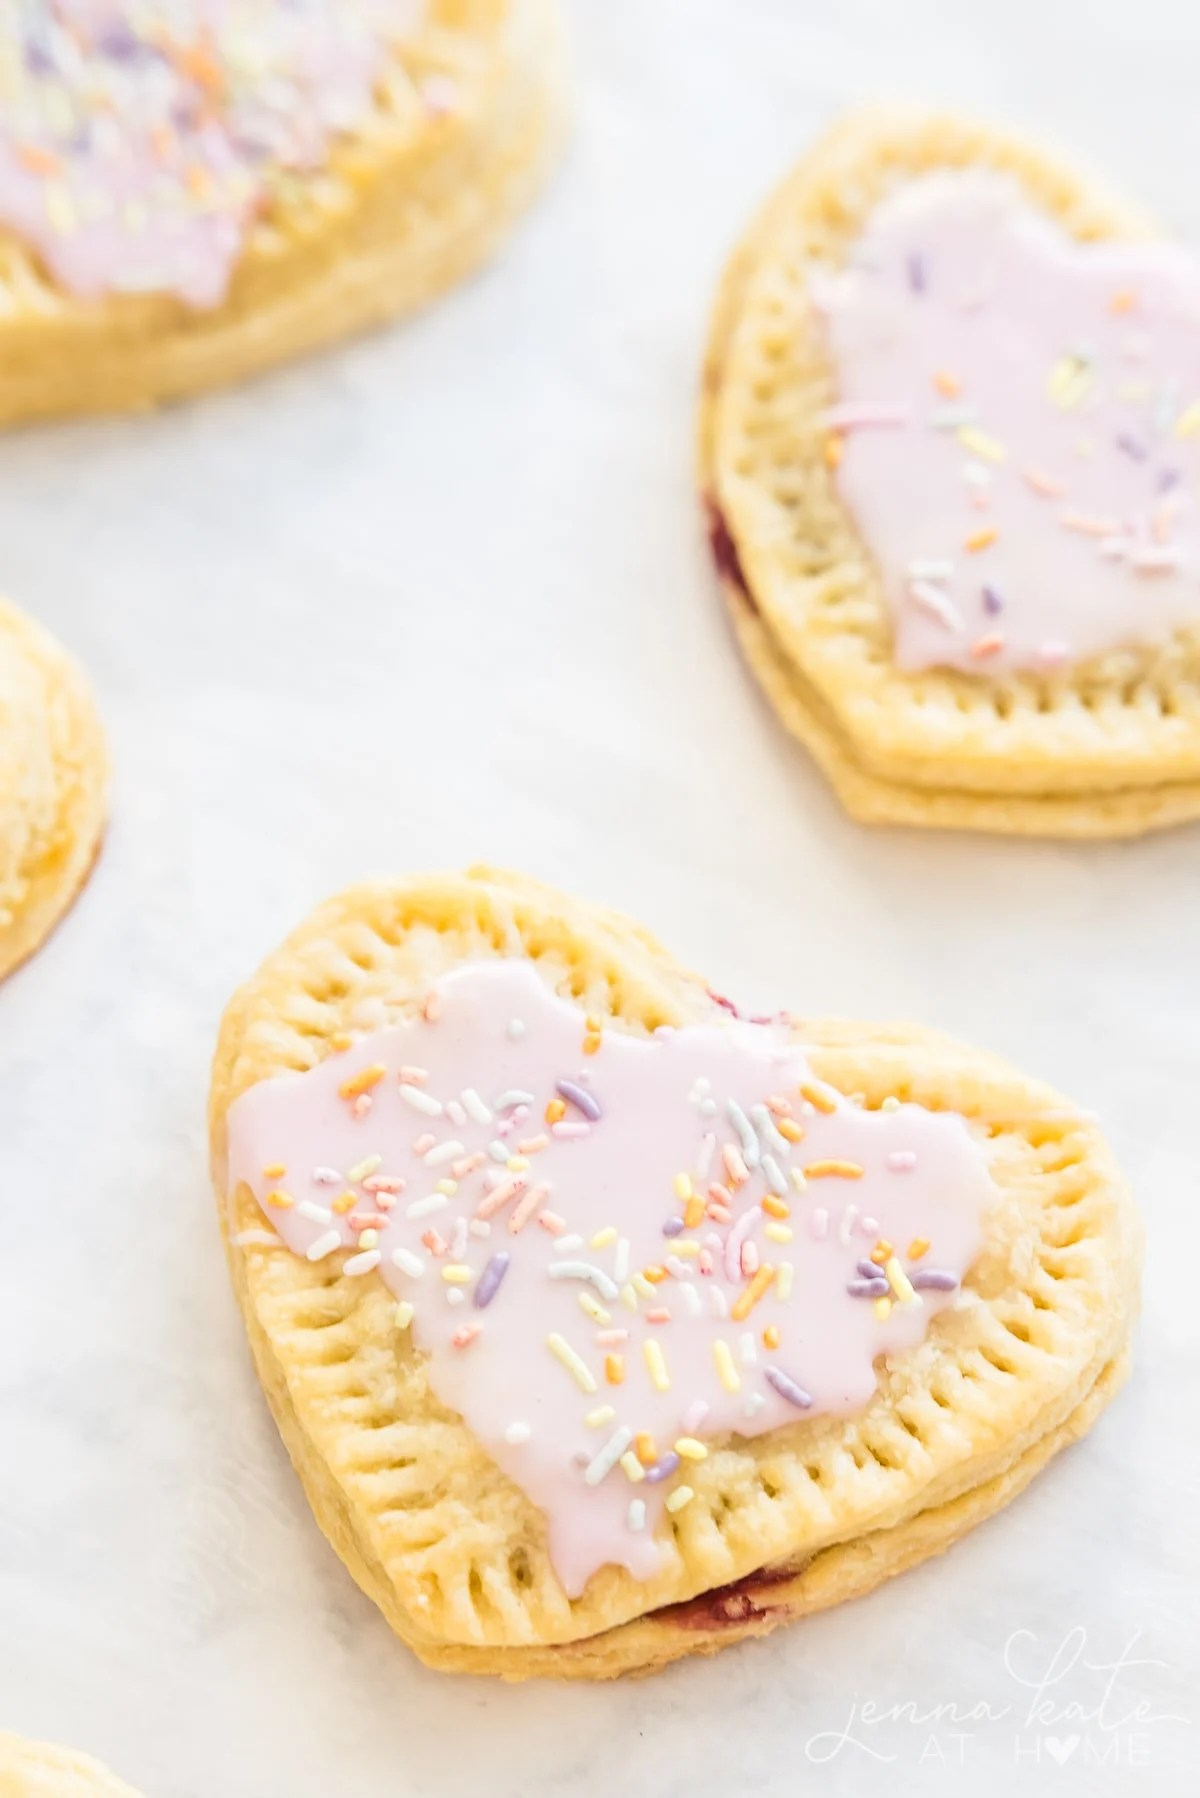 Homemade heart shaped pop tarts with vanilla icing